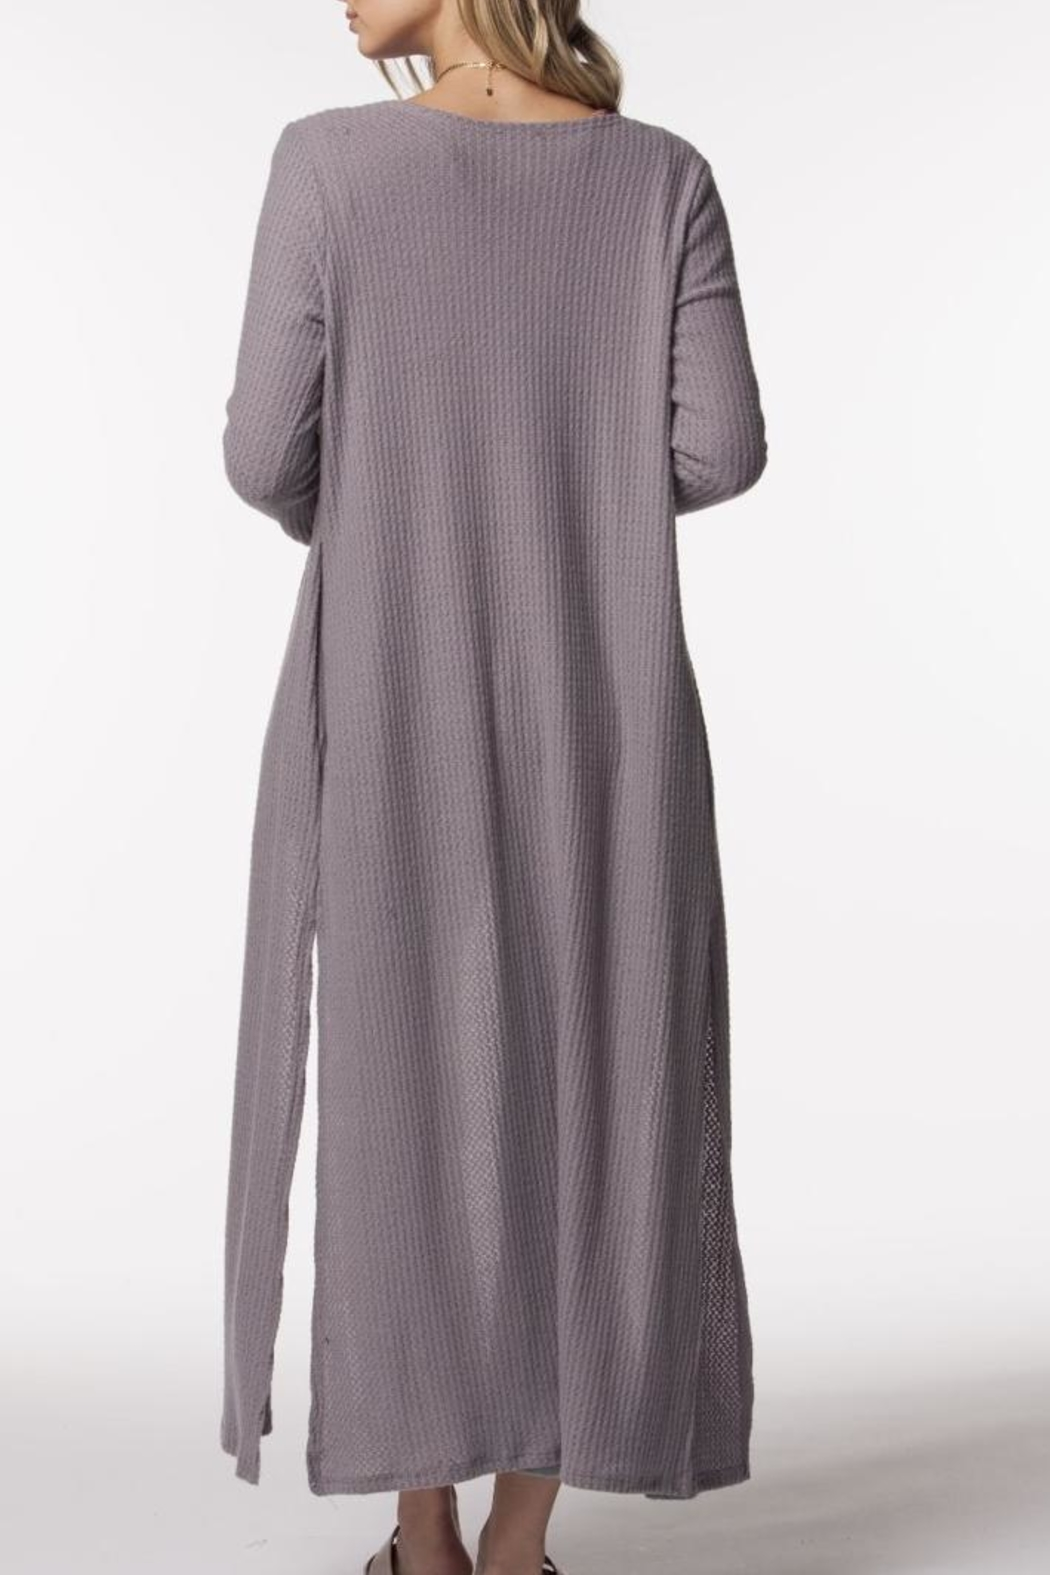 PPLA Clothing Zaria Duster - Front Full Image